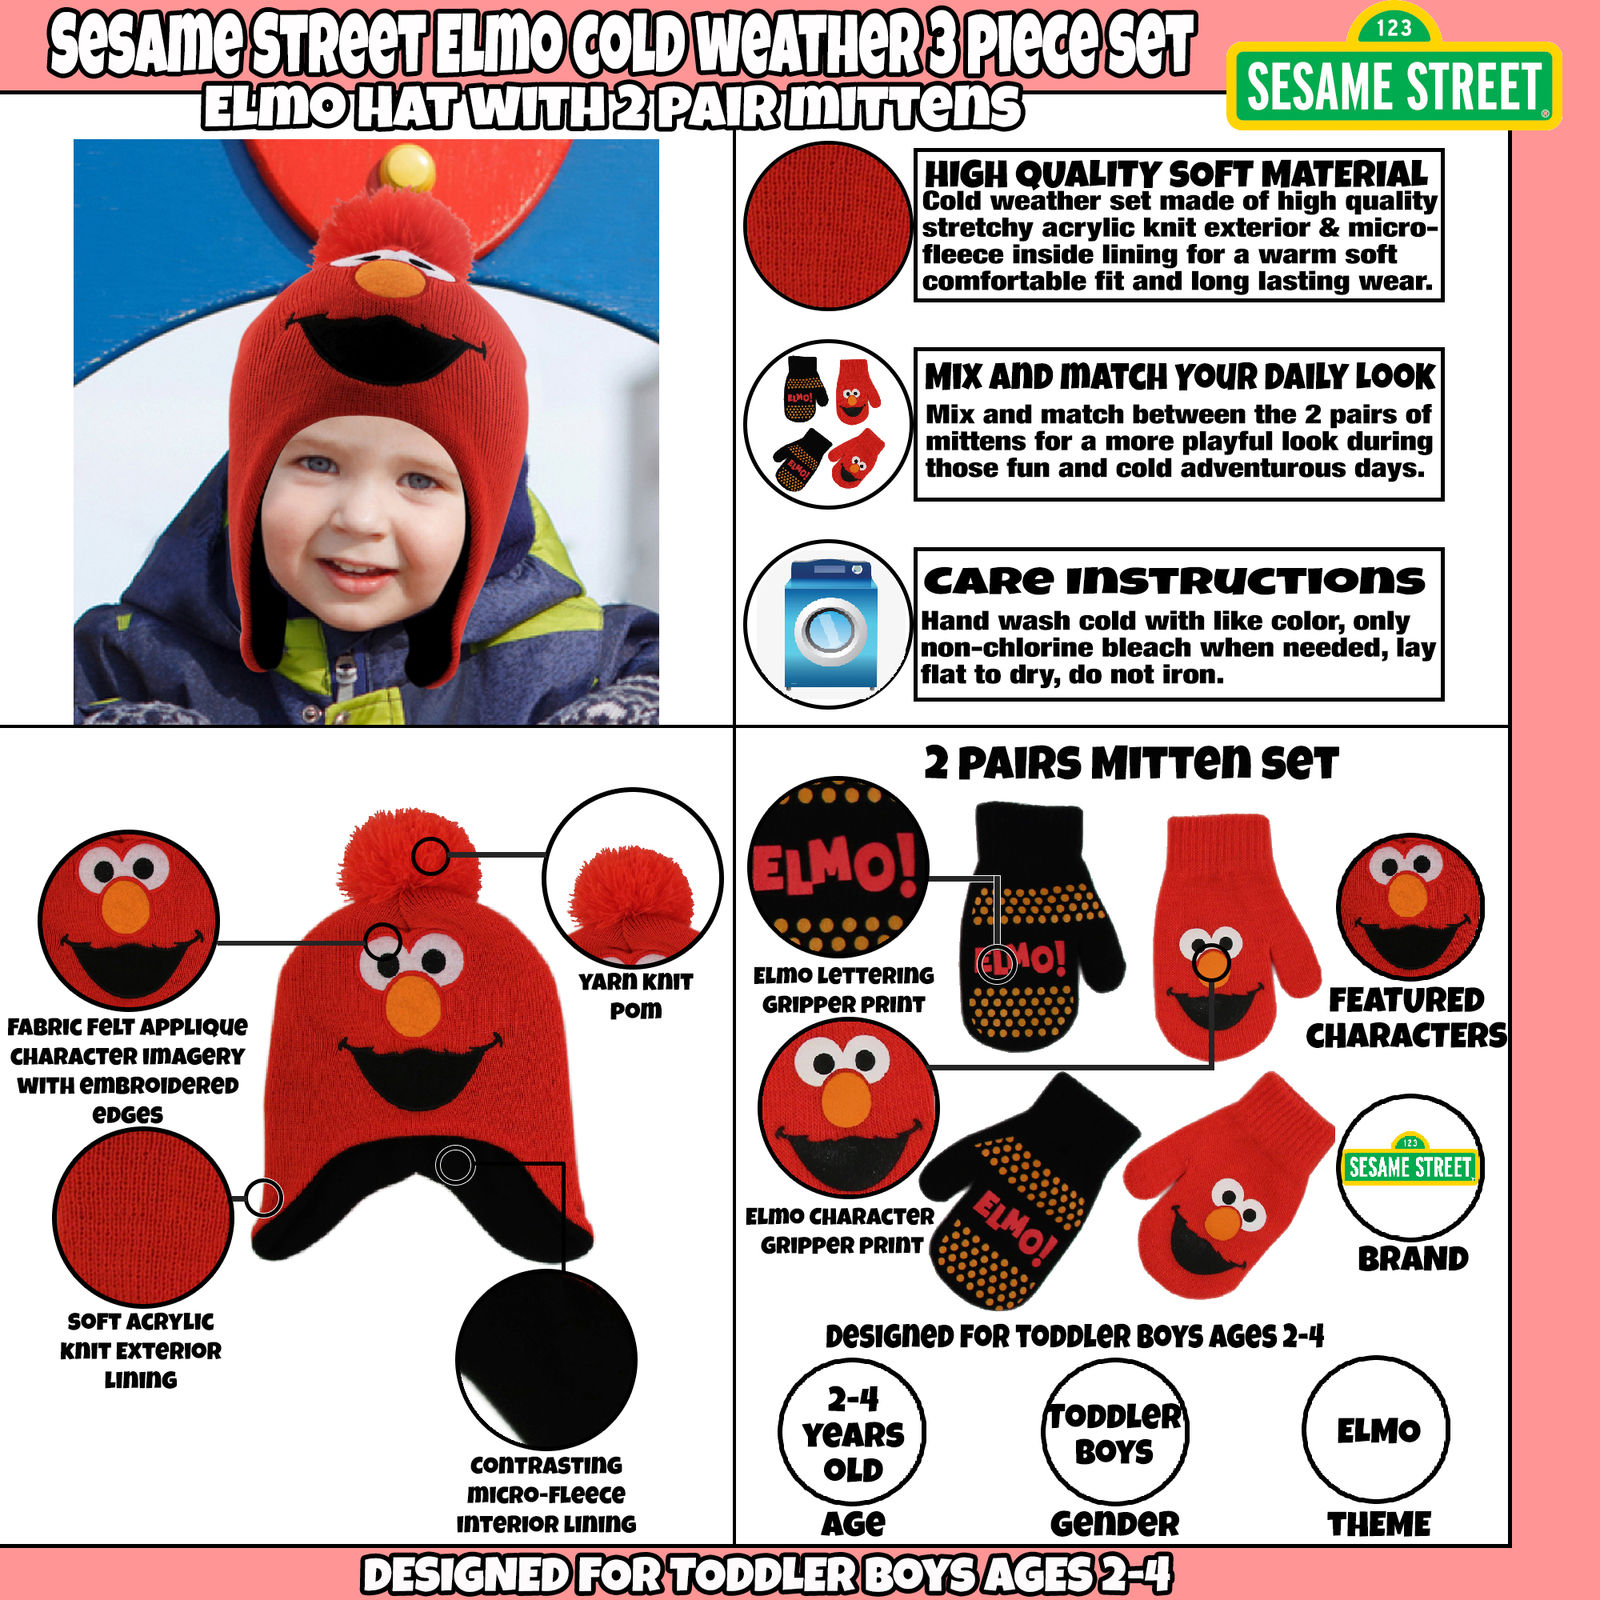 Toddler Boys Age 2-4 Sesame Street Elmo Hat and 2 Pair Mittens Cold Weather Set